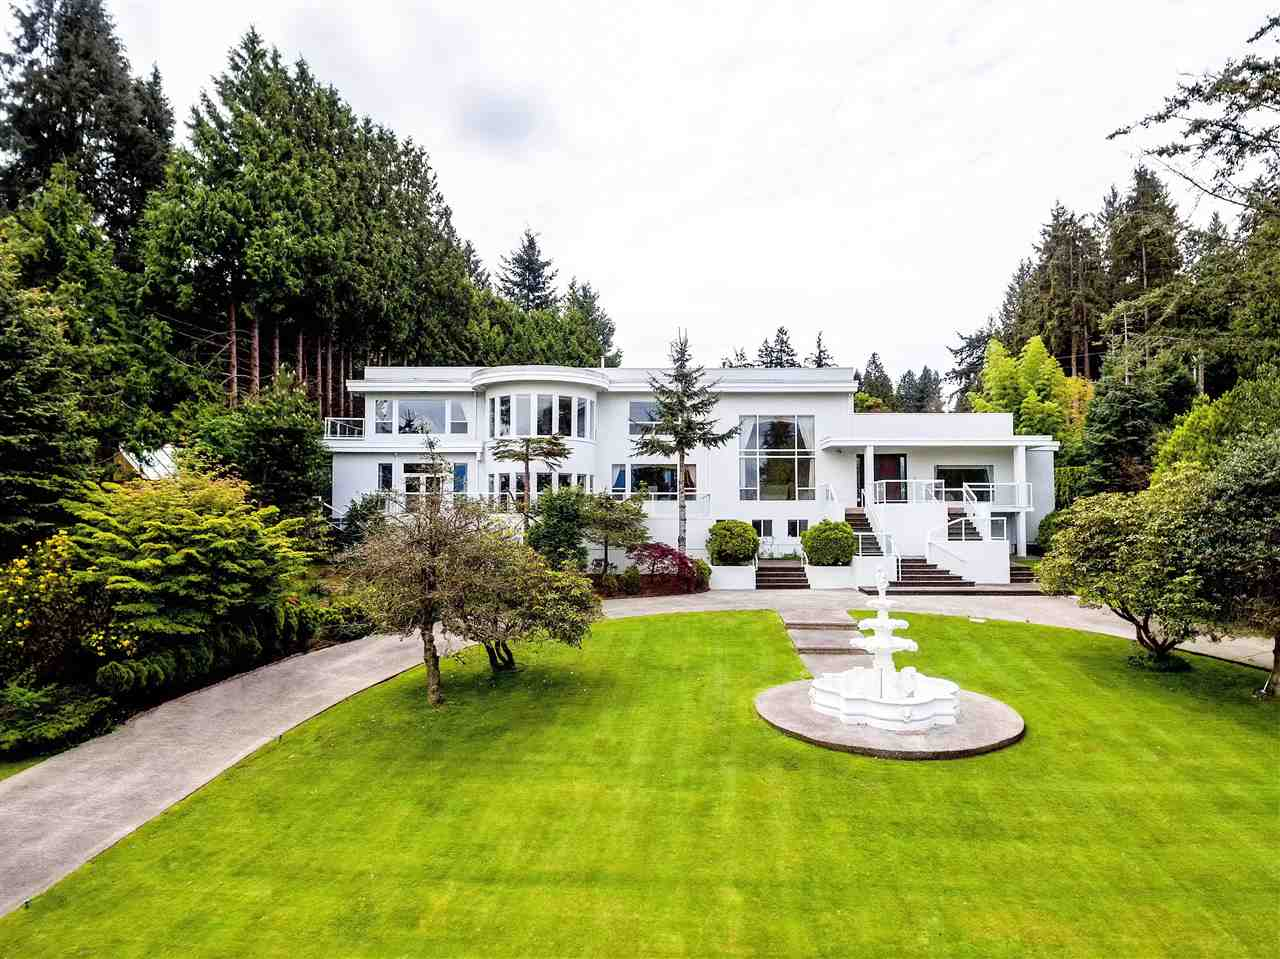 Spectacular Residence. In the prestigious Point Grey area, this residence w/ water & mountain views showcases a huge meticulous front yard & circular driveway. Over 35,500 sqft of precious lot size & over 8,000 sqft of luxurious living. Impressive grand foyer w/ skylights & dble height living room. Entertainment sized dining room & family/media room. Gourmet kitchen w/ wok room & breakfast nook. 2 guest rooms on main. Upper floor has 4 well-appointed bdrms including an enormous sized master suite w/ own office. Indoor pool w/ hot tub & conservatory area. Nanny quarter & recreation room down. Attached 2 car garage & air-conditioning. A short drive to UBC, golf course & beaches. Good public & private school catchment.